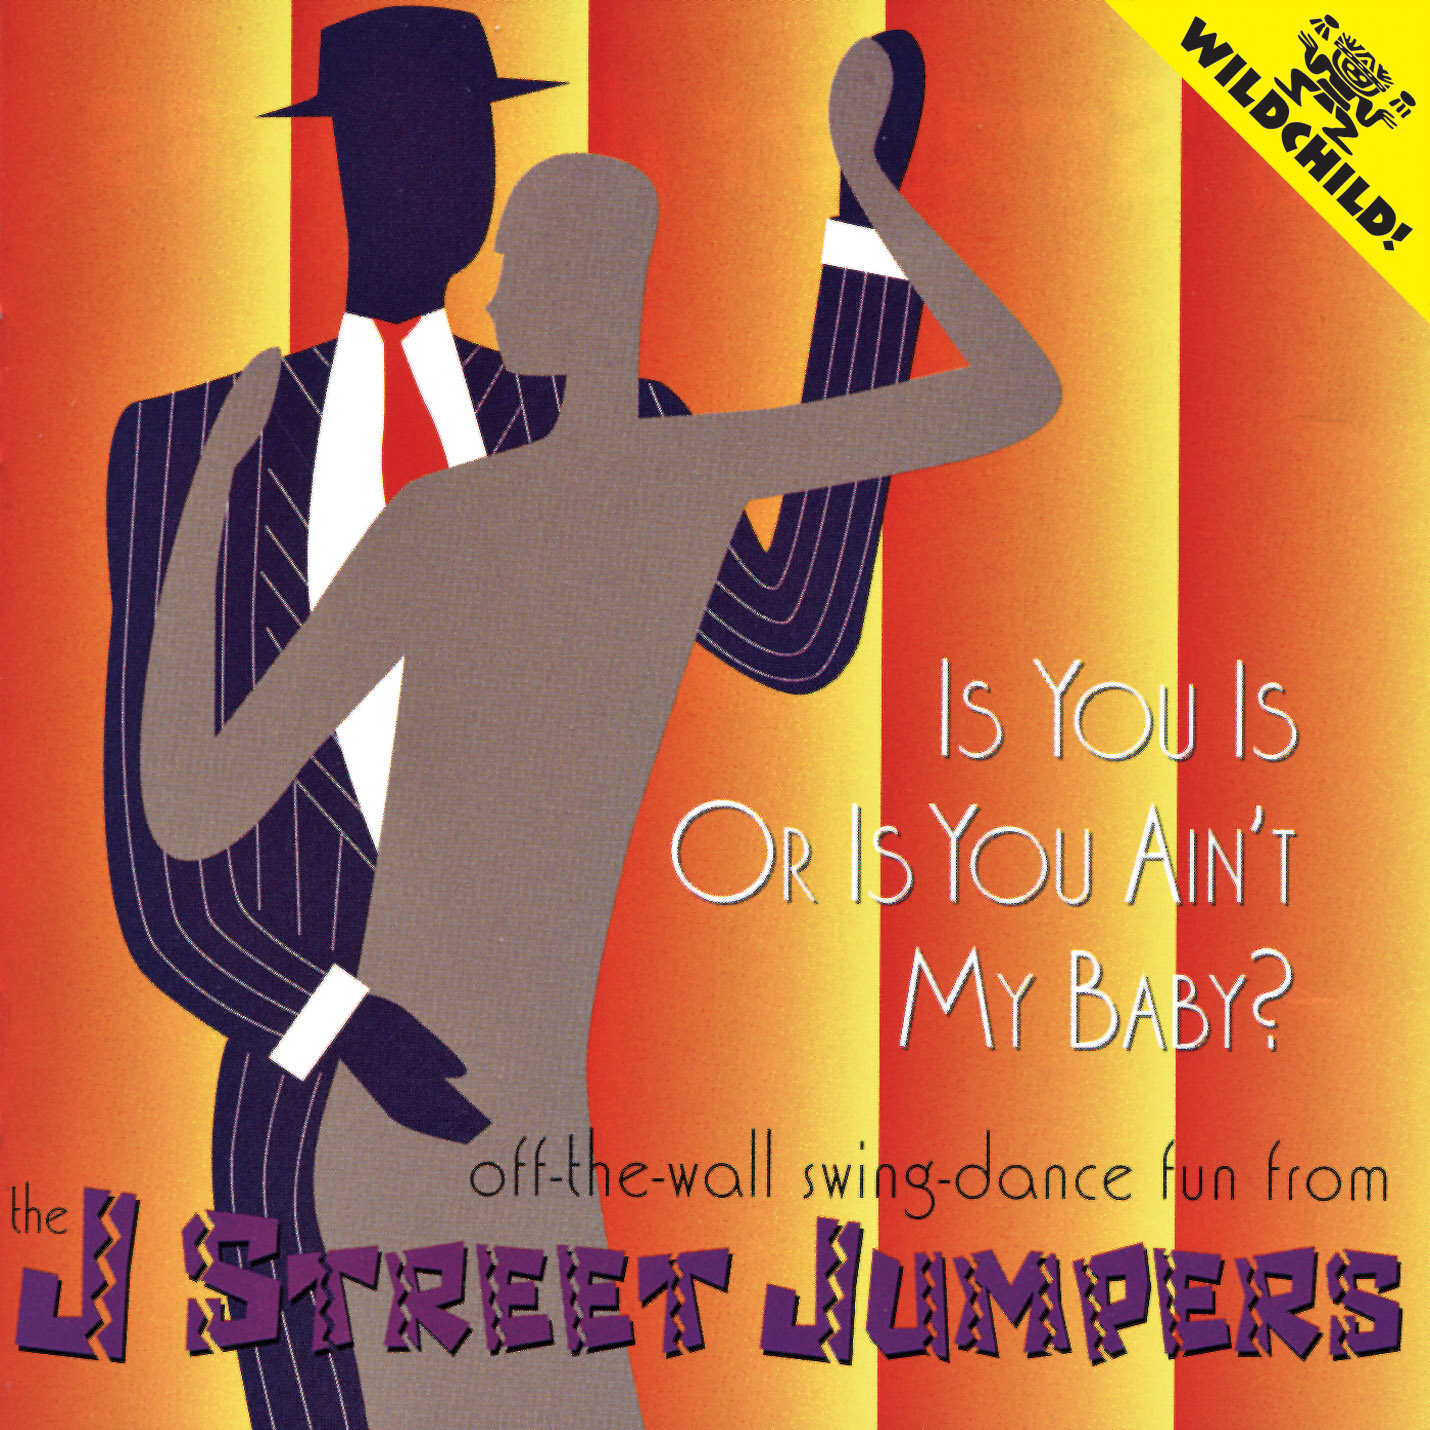 J Street Jumpers: Is You Is or Is You Ain't My Baby